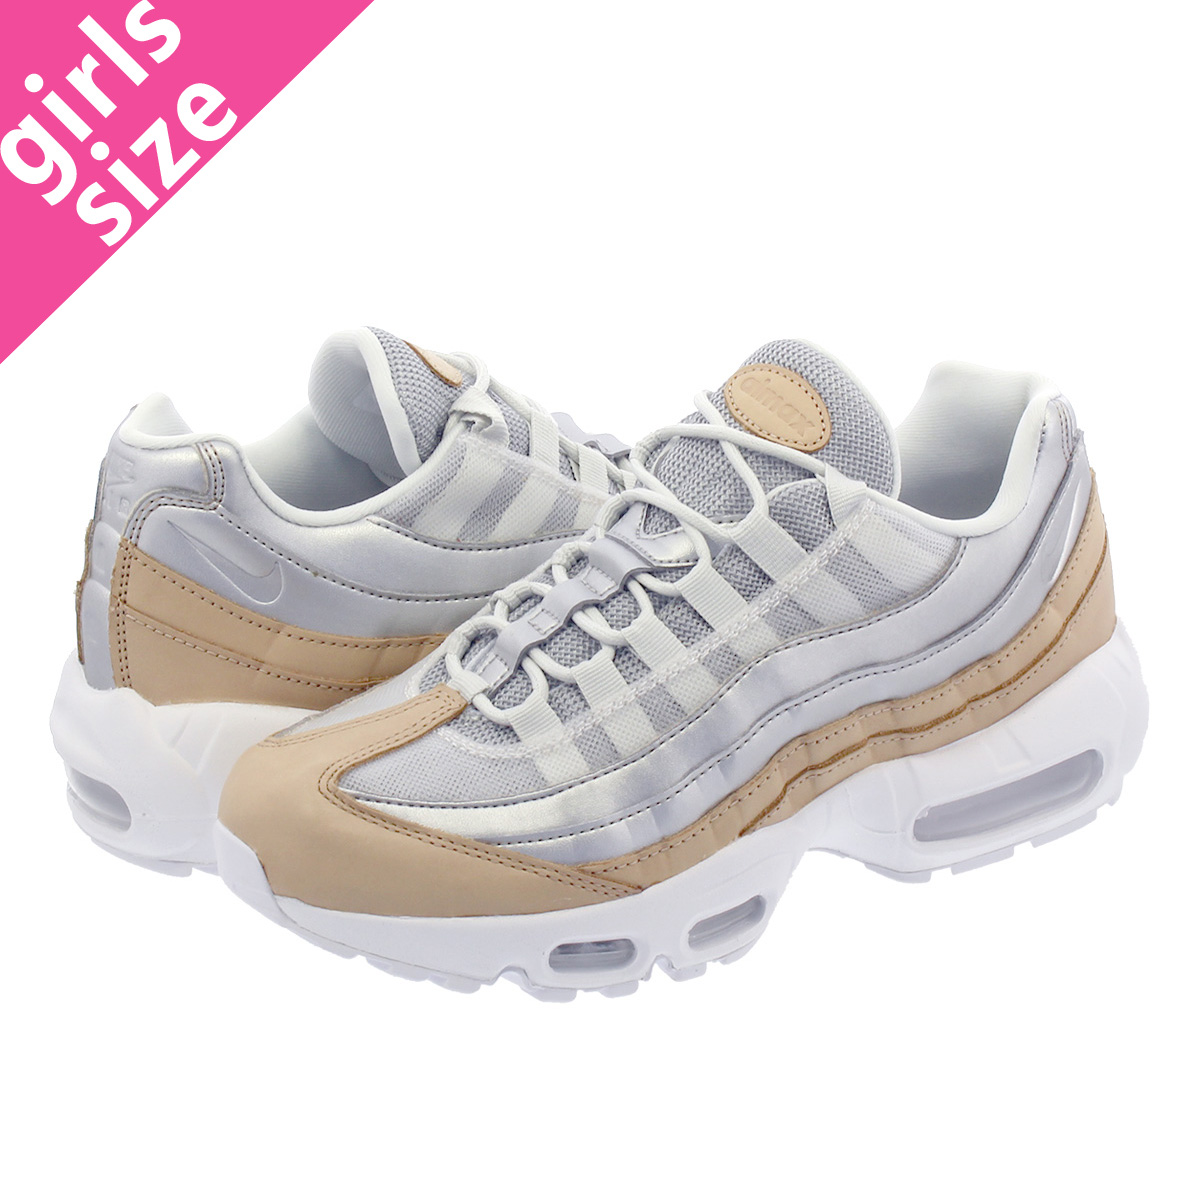 nett LOWTEX BIG SMALL SHOP: NIKE WMNS AIR MAX 95 SE PRM Nike